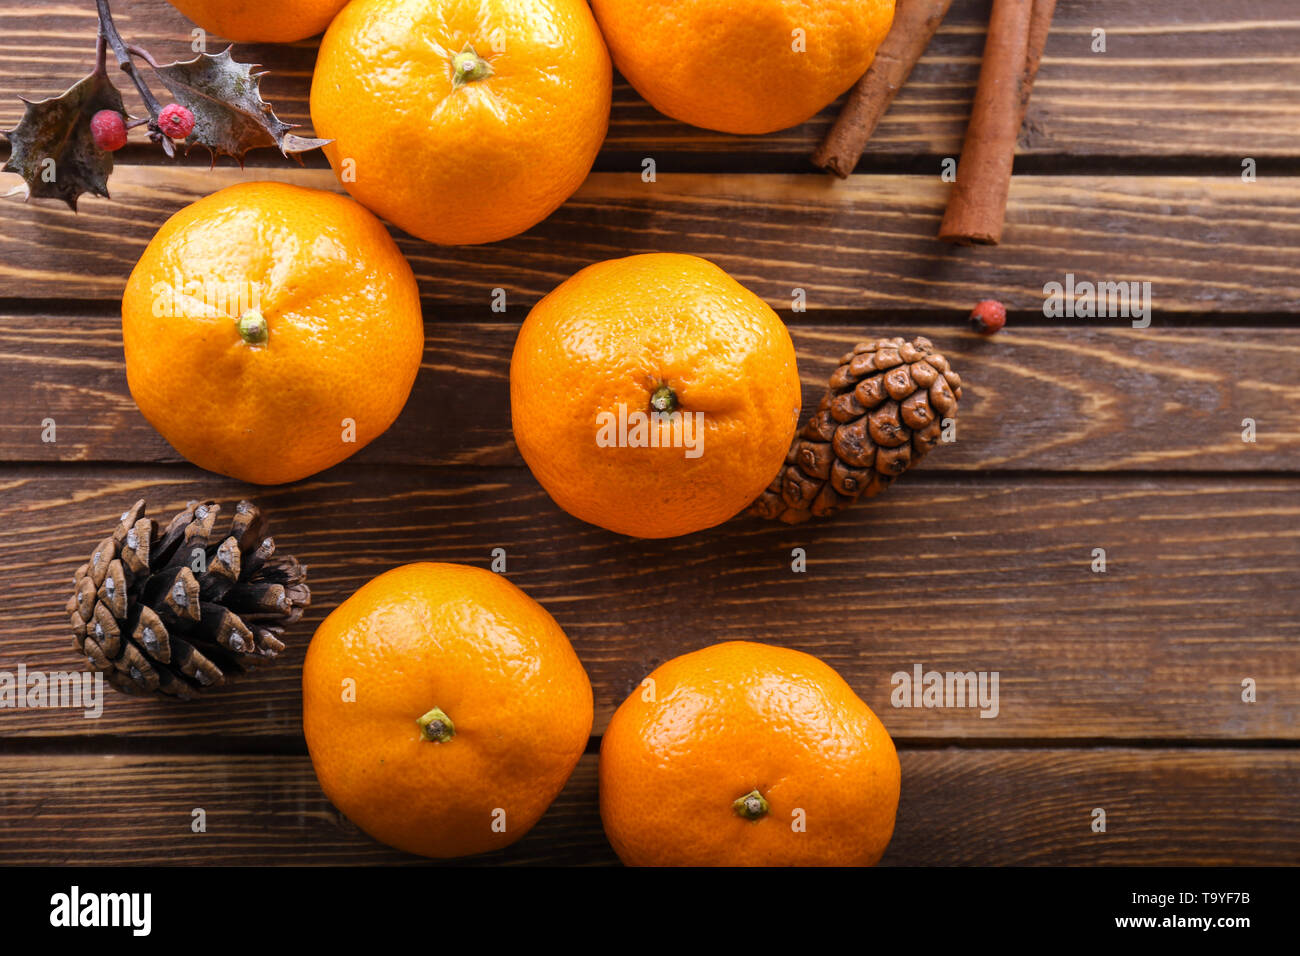 Ripe sweet tangerines and cones on wooden background - Stock Image